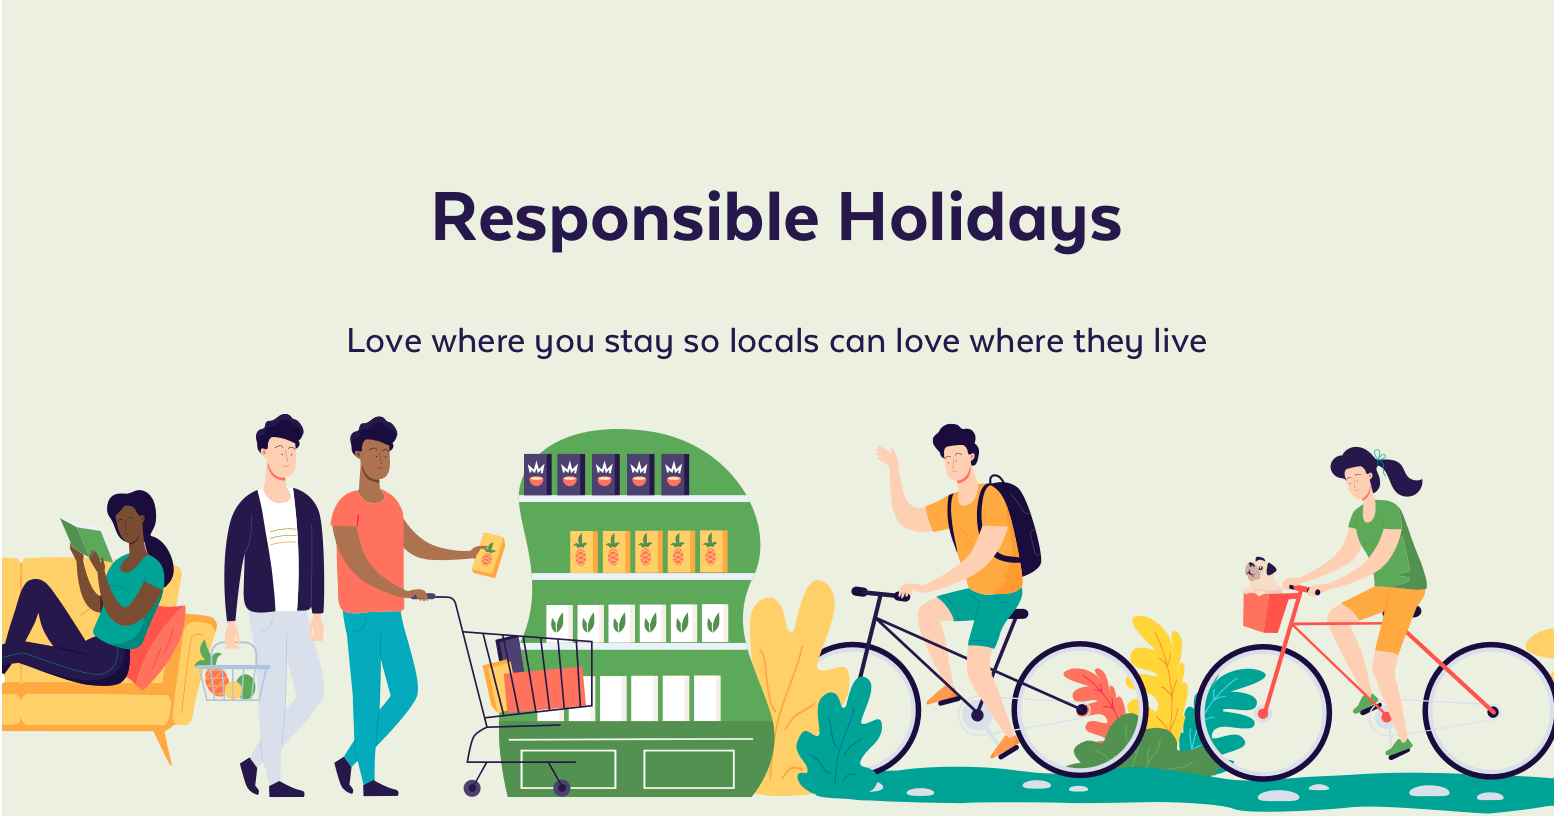 Responsible holidays